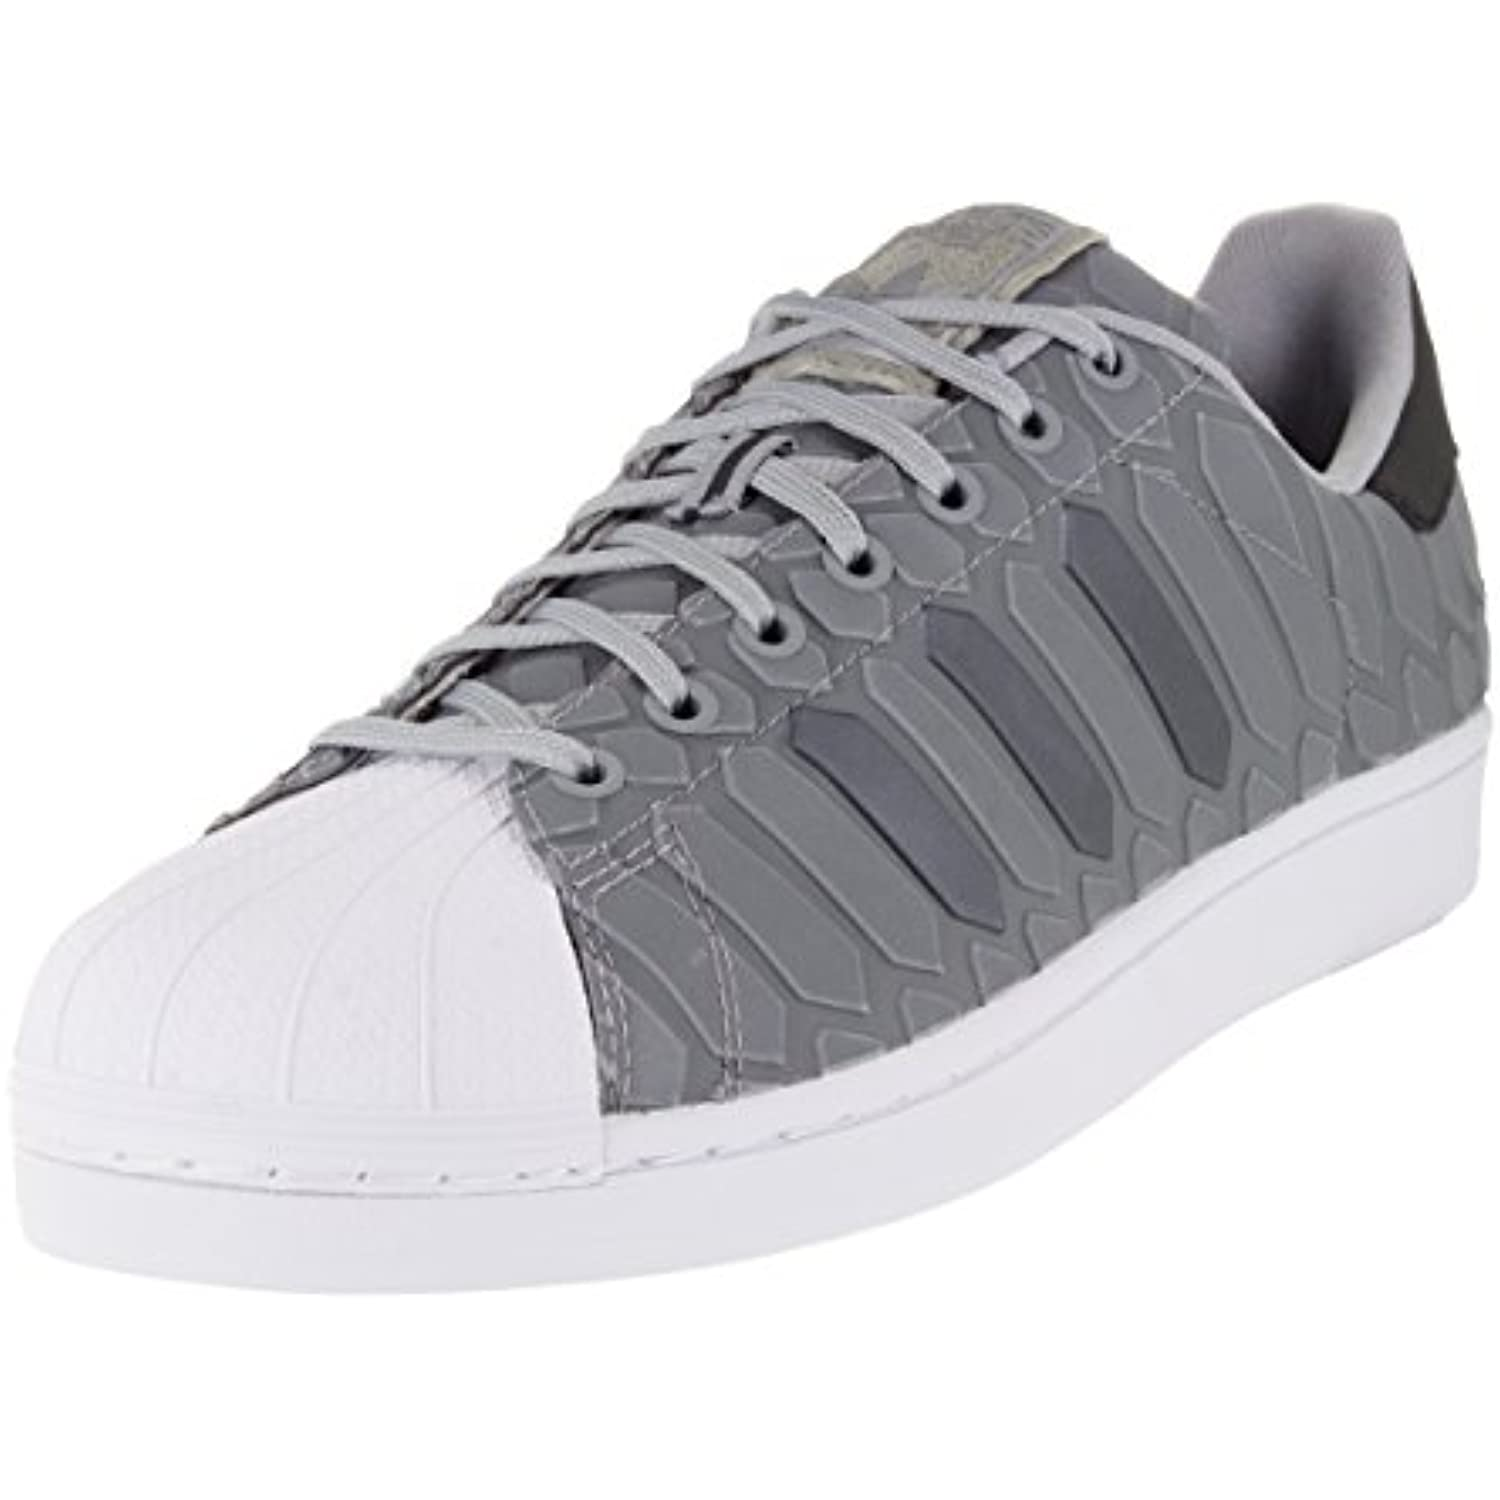 Adidas Superstar  Originals CNoir  Superstar / supcol / ftwwht Basketball Shoe 9 nous - B015905XQG - b6c9c3